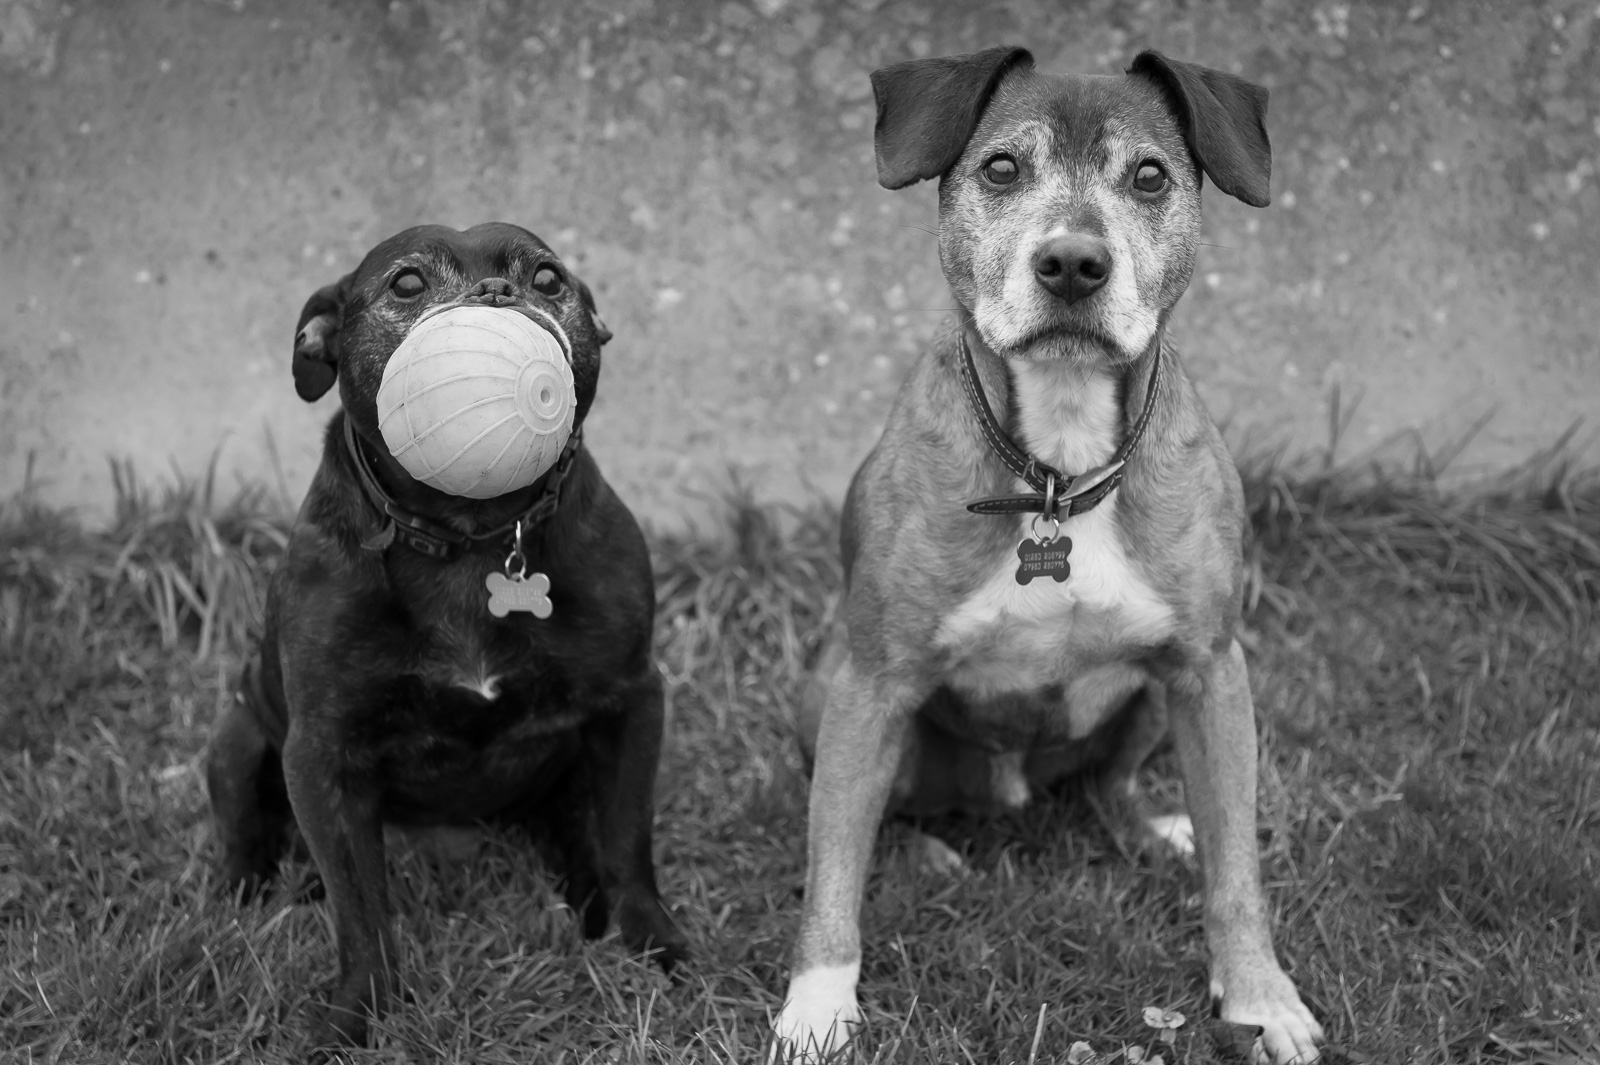 portrait photographer, portrait photography derby, Pet portrait on location: two dogs sitting on the grass, one of them holding a ball in its mouth: Star and Riley